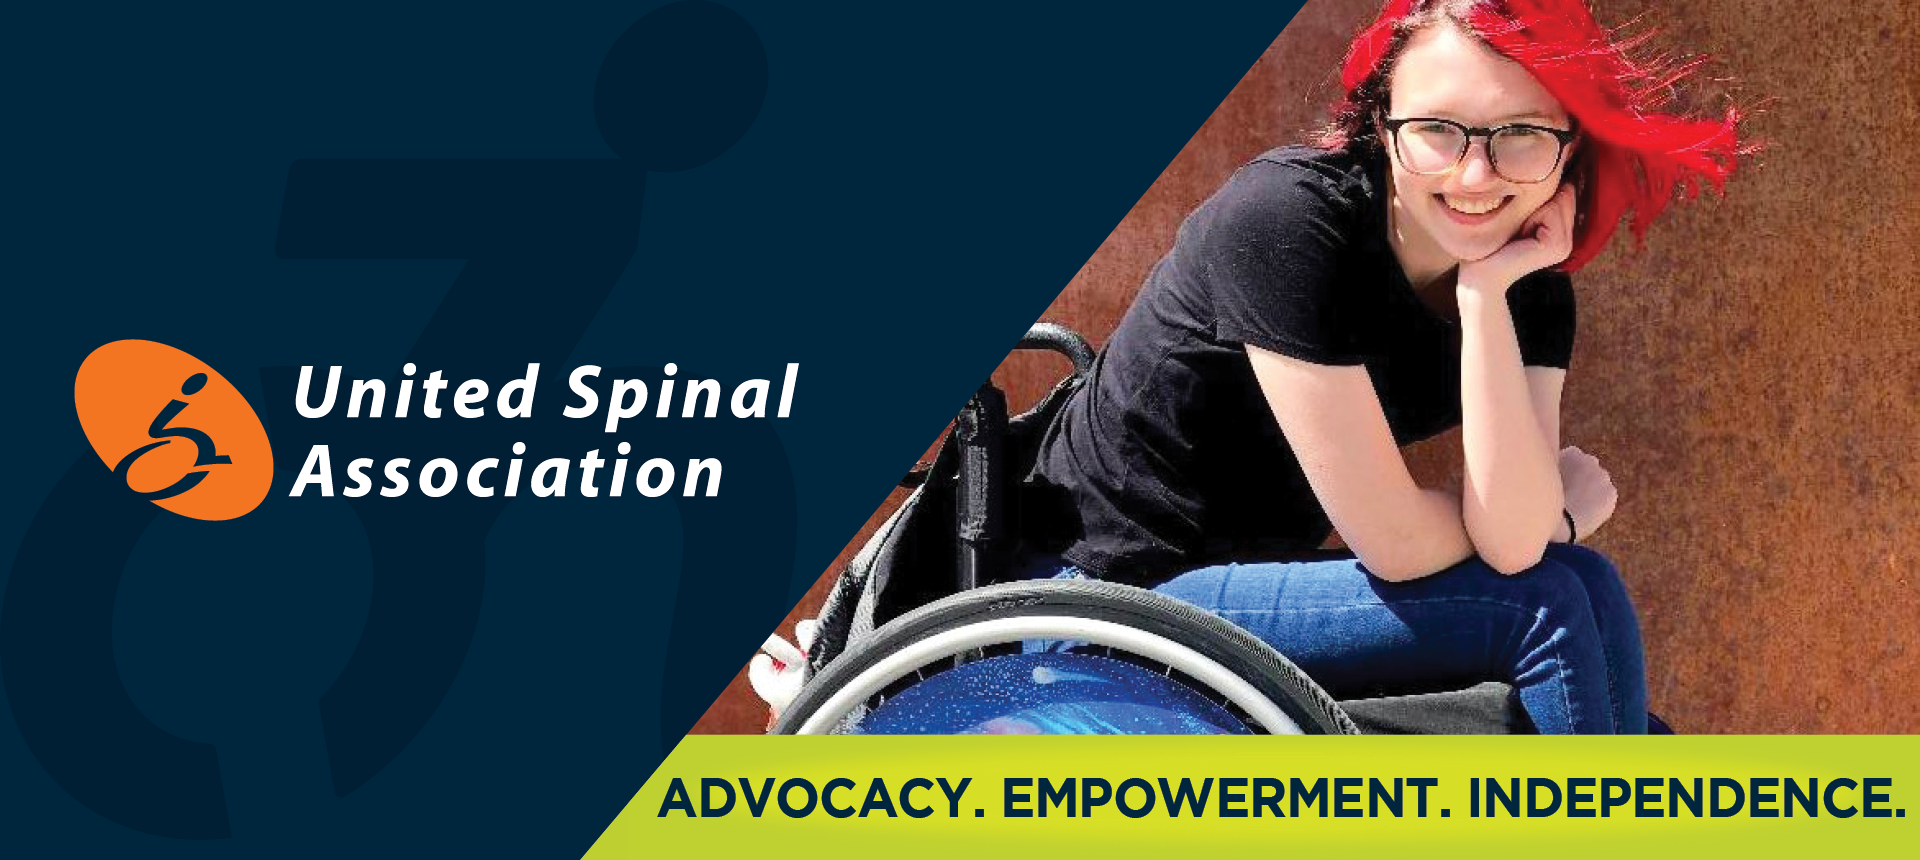 On left side of image, the UnitedSpinal Association logo. On right side of the image, a young Caucasian woman with red hair smiles while sitting in her wheelchair. Underneath, the image reads: ADVOCACY. EMPOWERMENT. INDEPENDENCE.